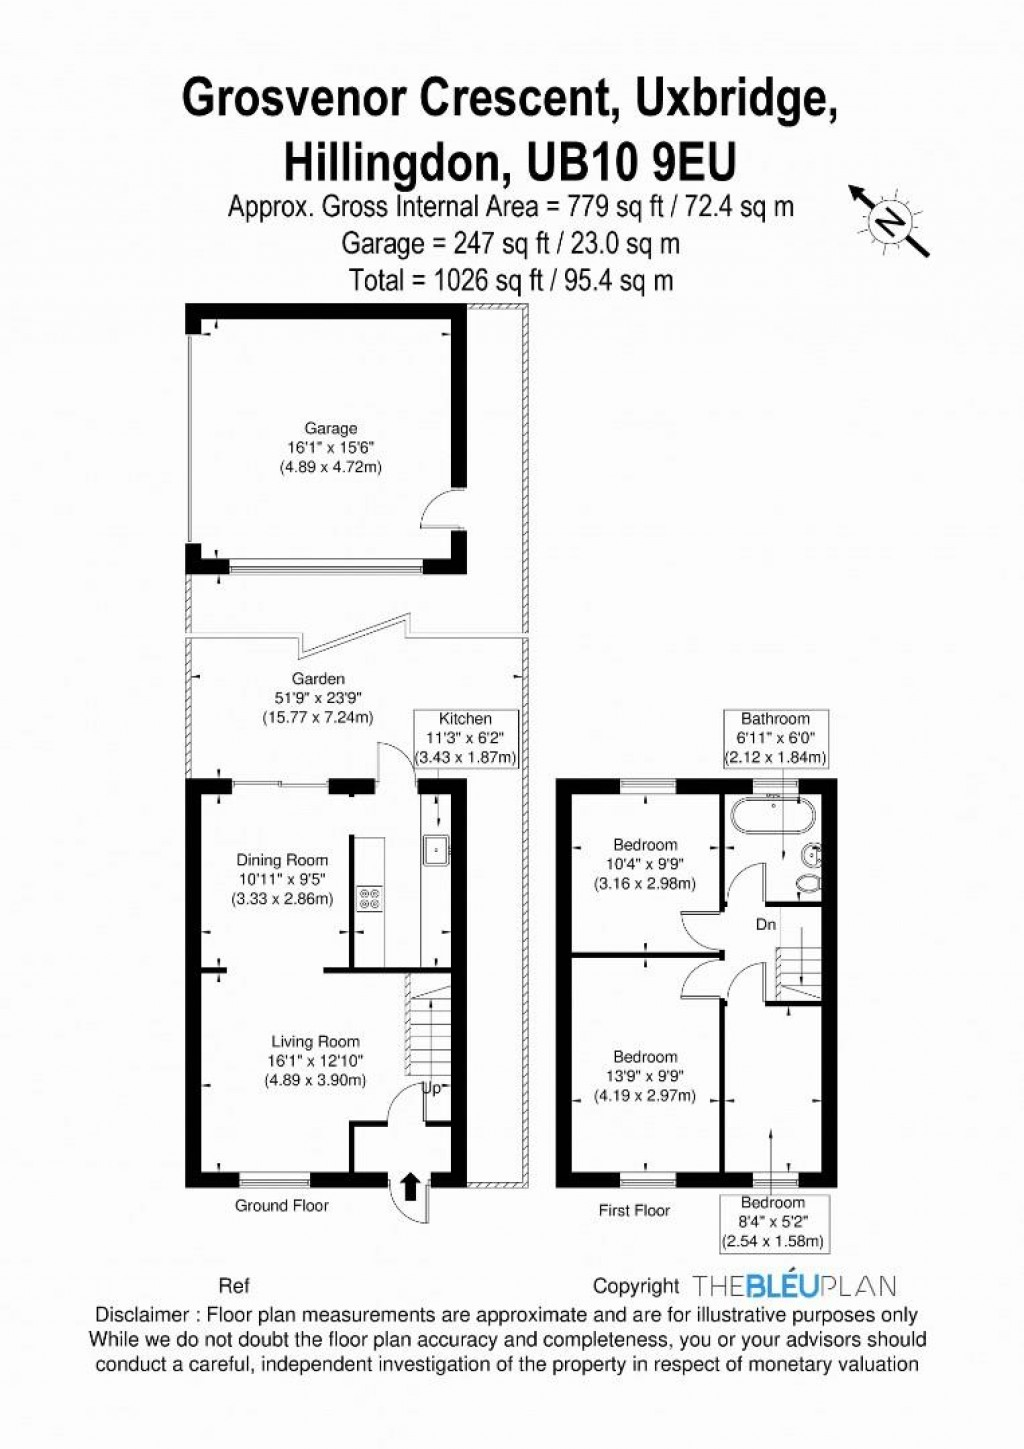 Floorplans For Grosvenor Crescent, Uxbridge